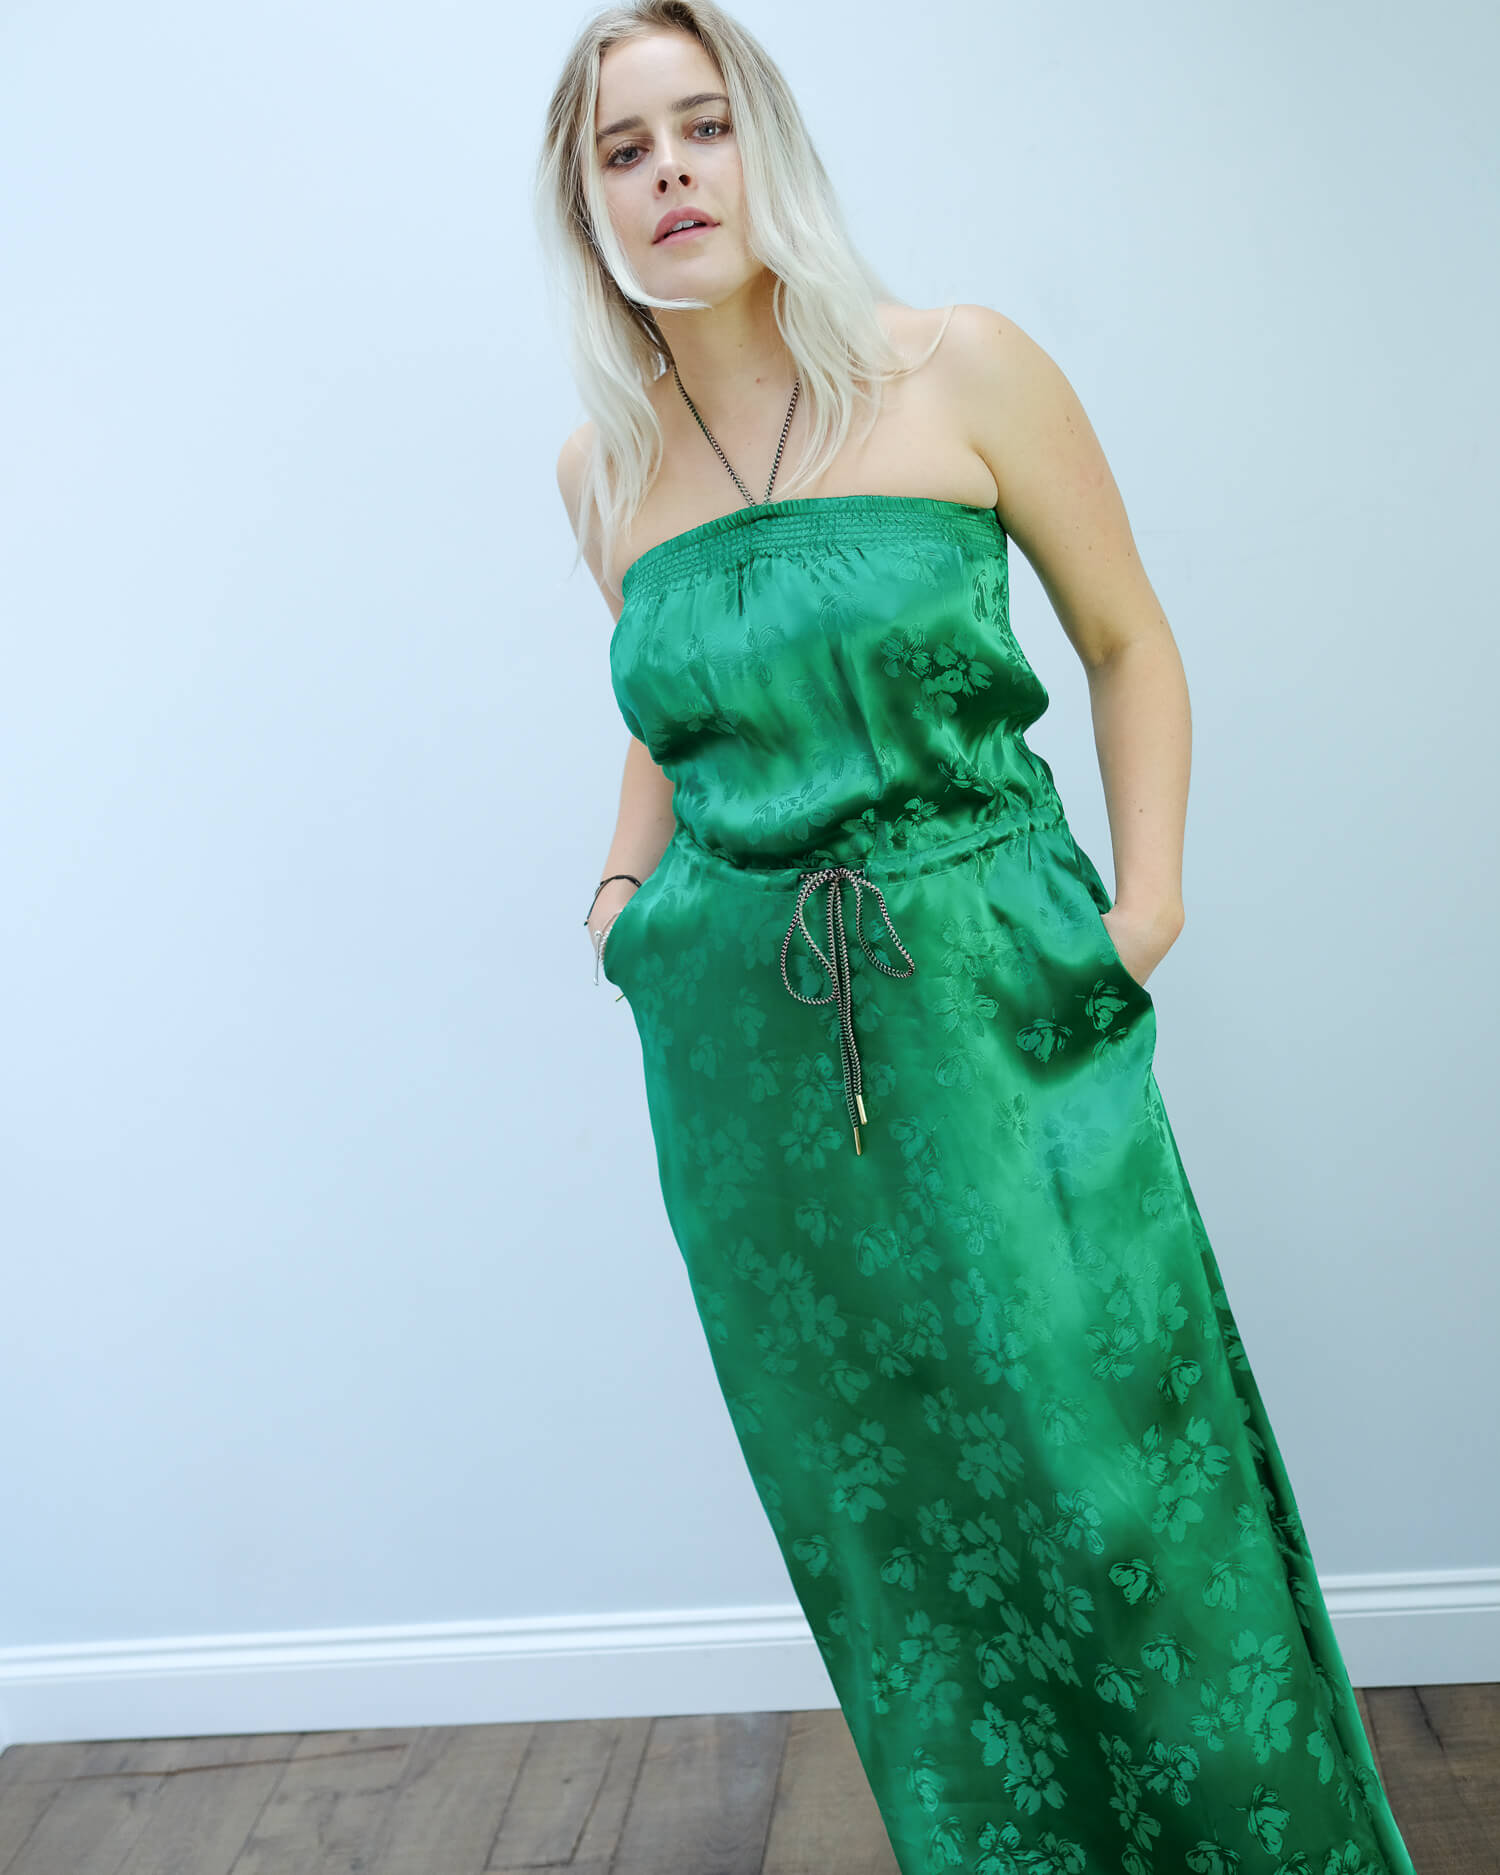 EA Vather strapless dress in green